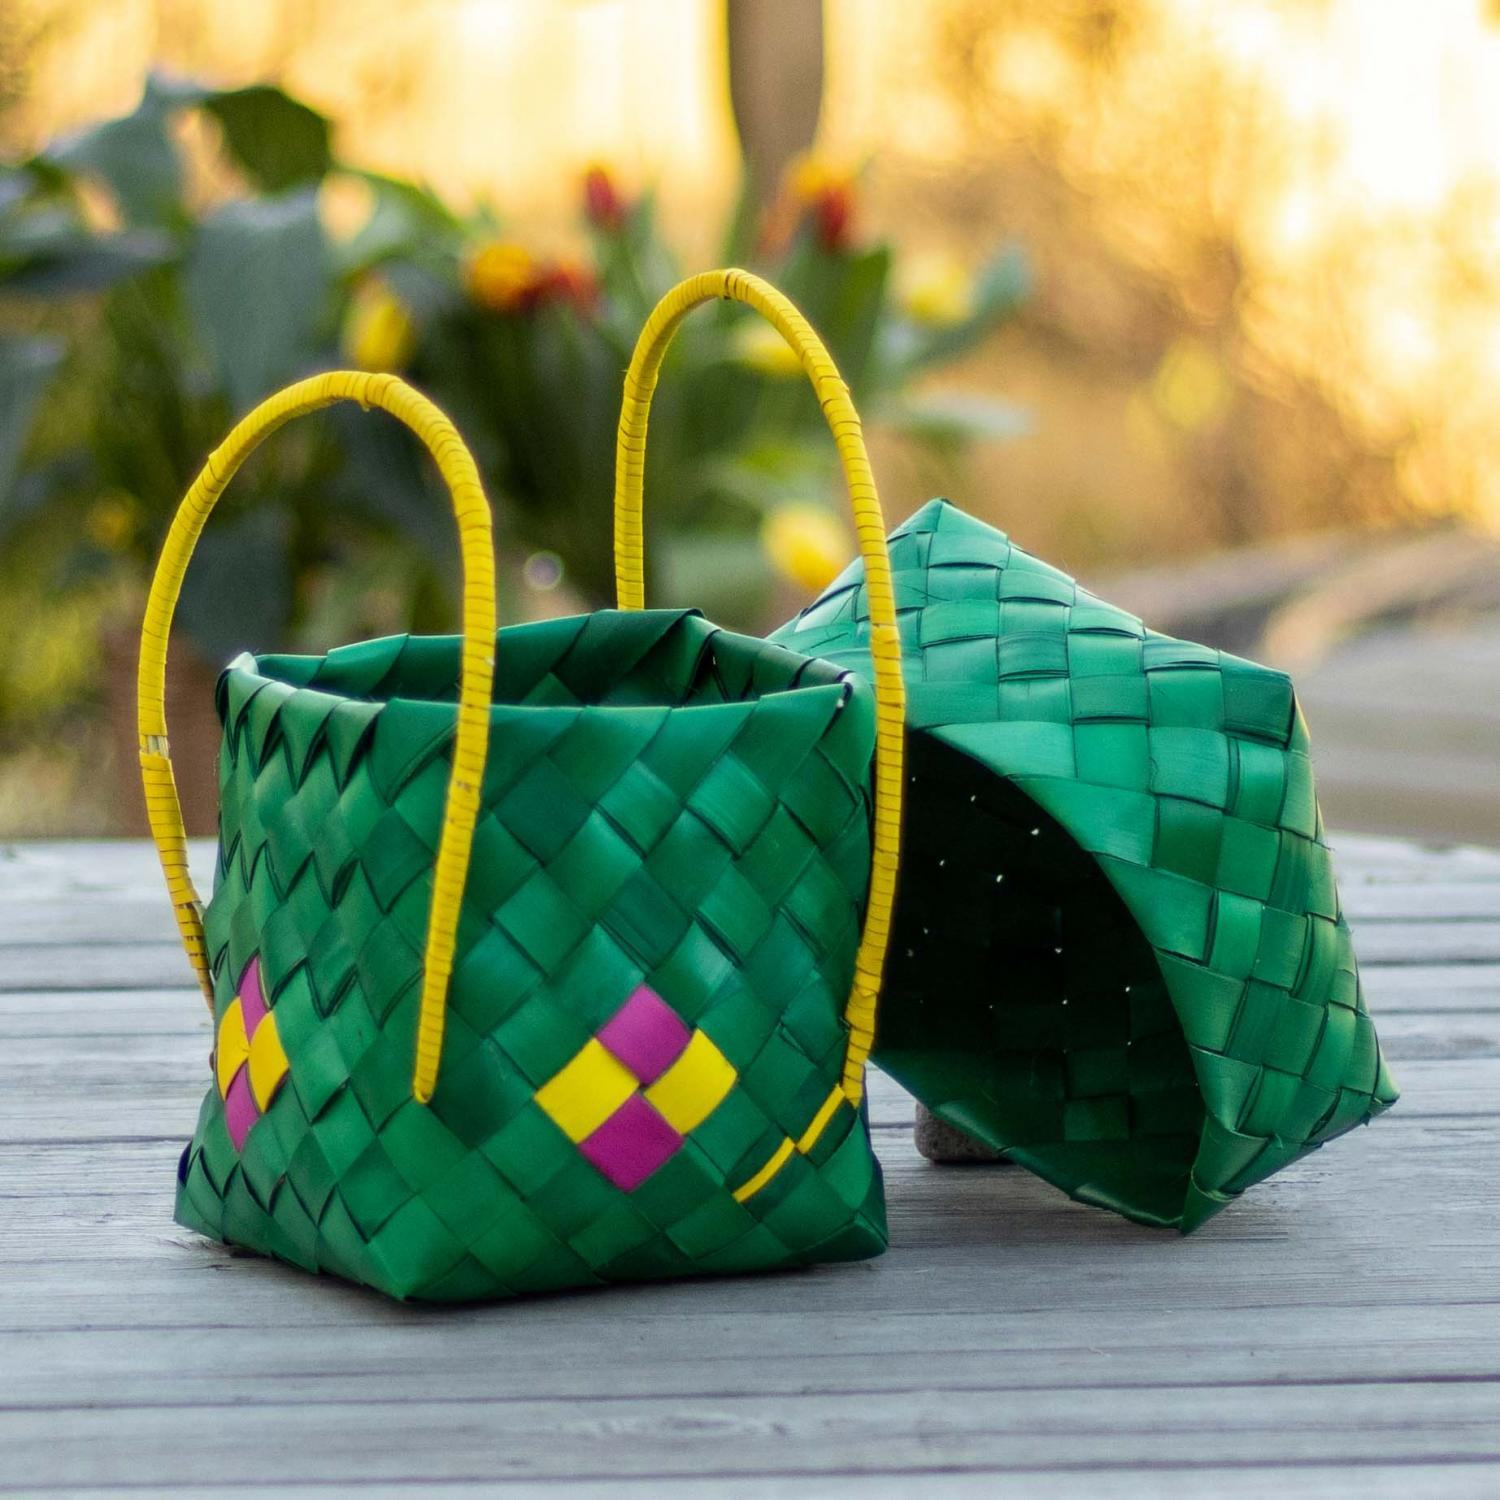 Bright green palm leaf box with pink handle and a small decoration in yellow and pink